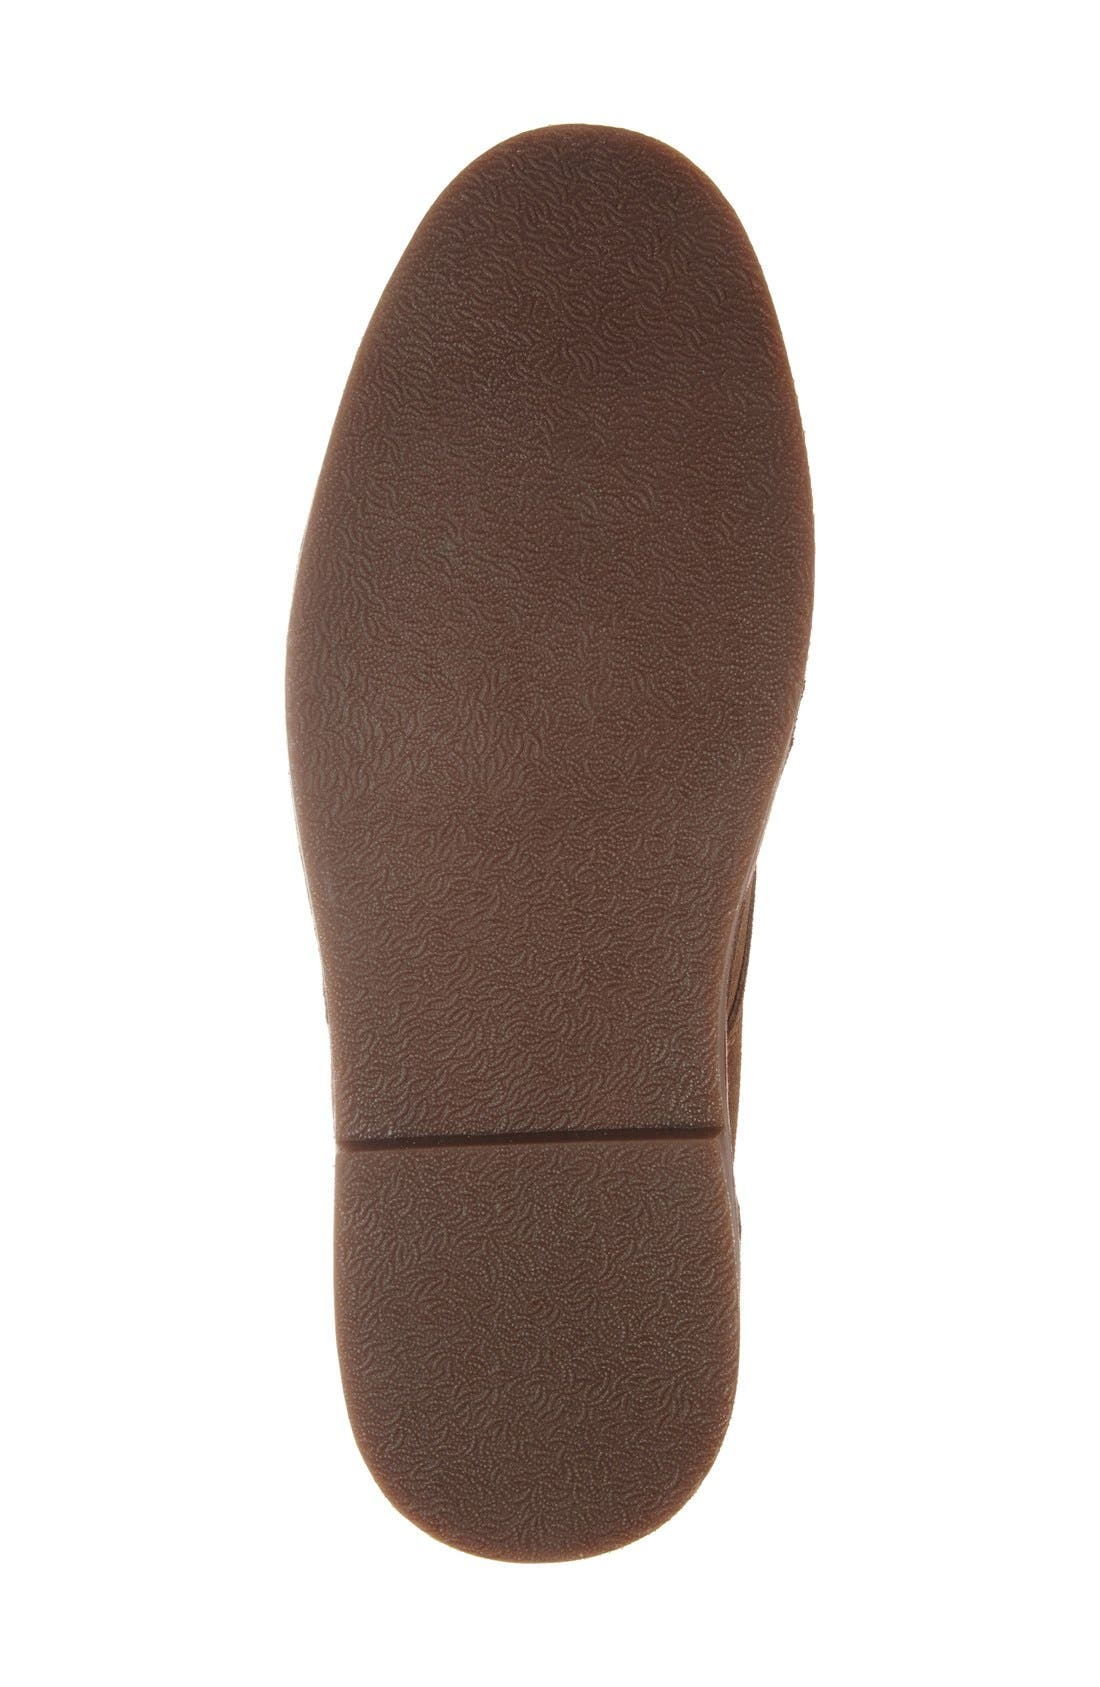 'Desert Sun' Chukka Boot,                             Alternate thumbnail 4, color,                             Taupe Suede